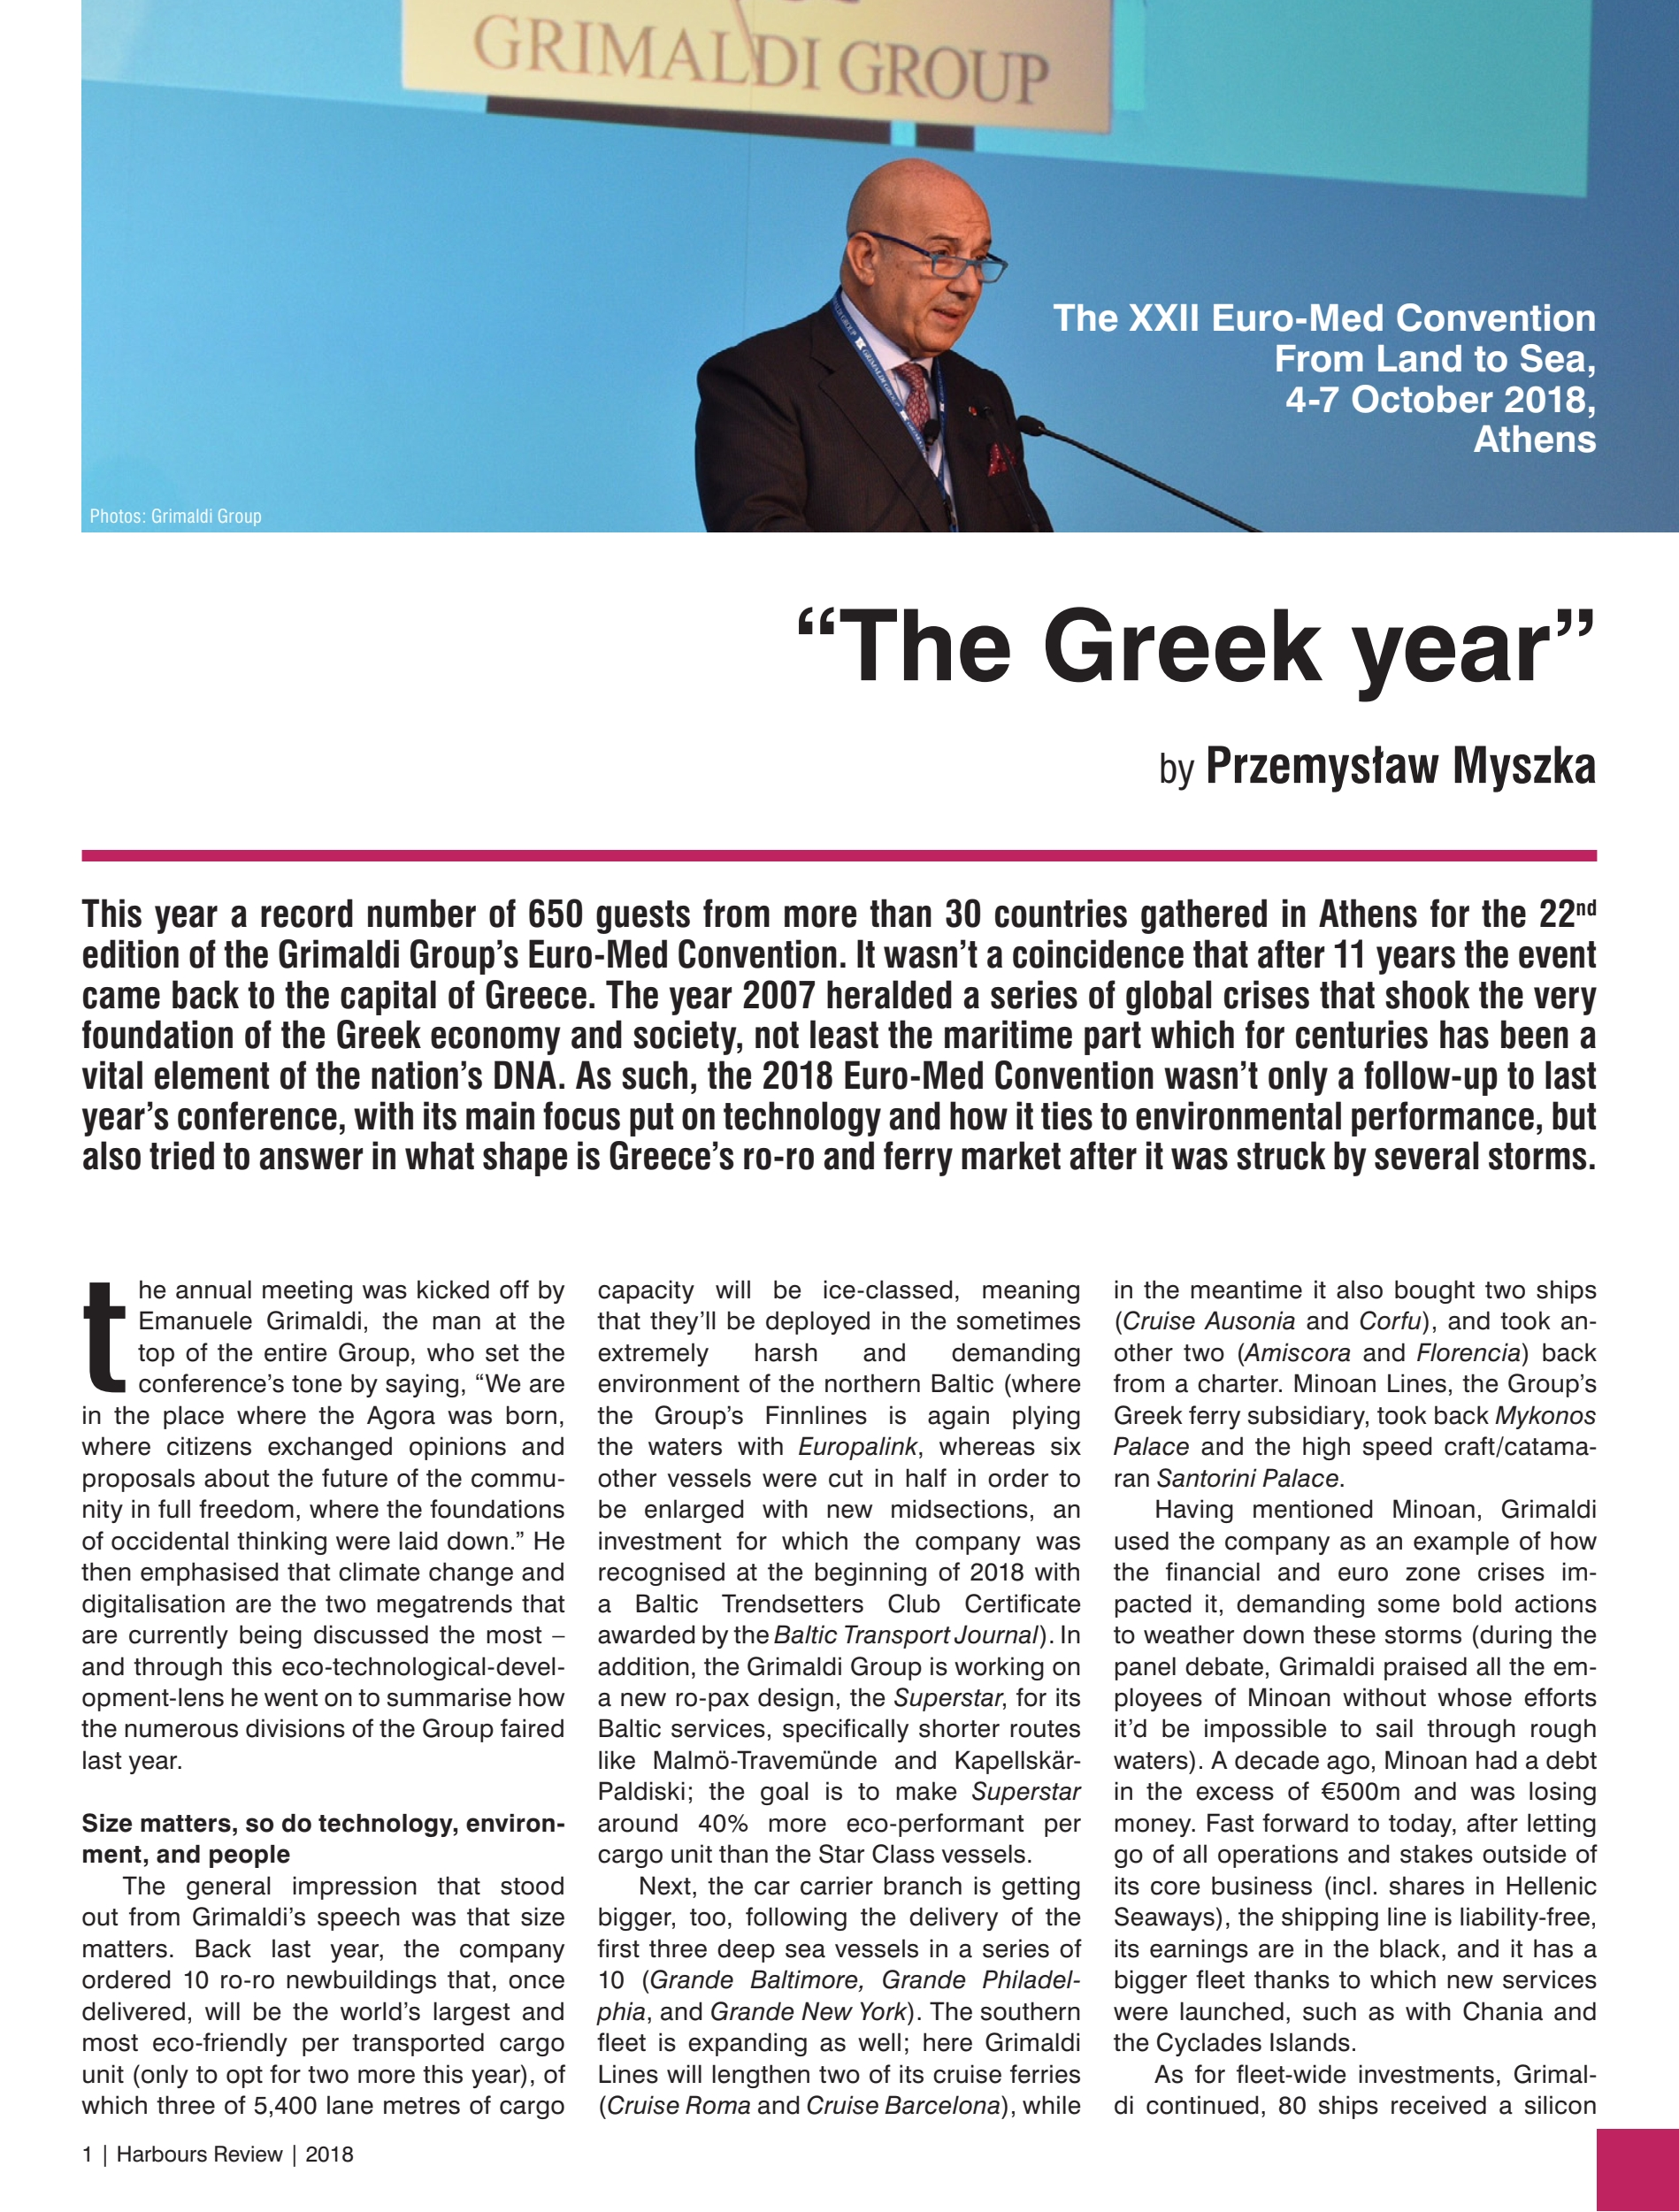 """The Greek year"". The XXII Euro-Med Convention From Land to Sea, 4-7 October 2018, Athens by Przemysław Myszka"